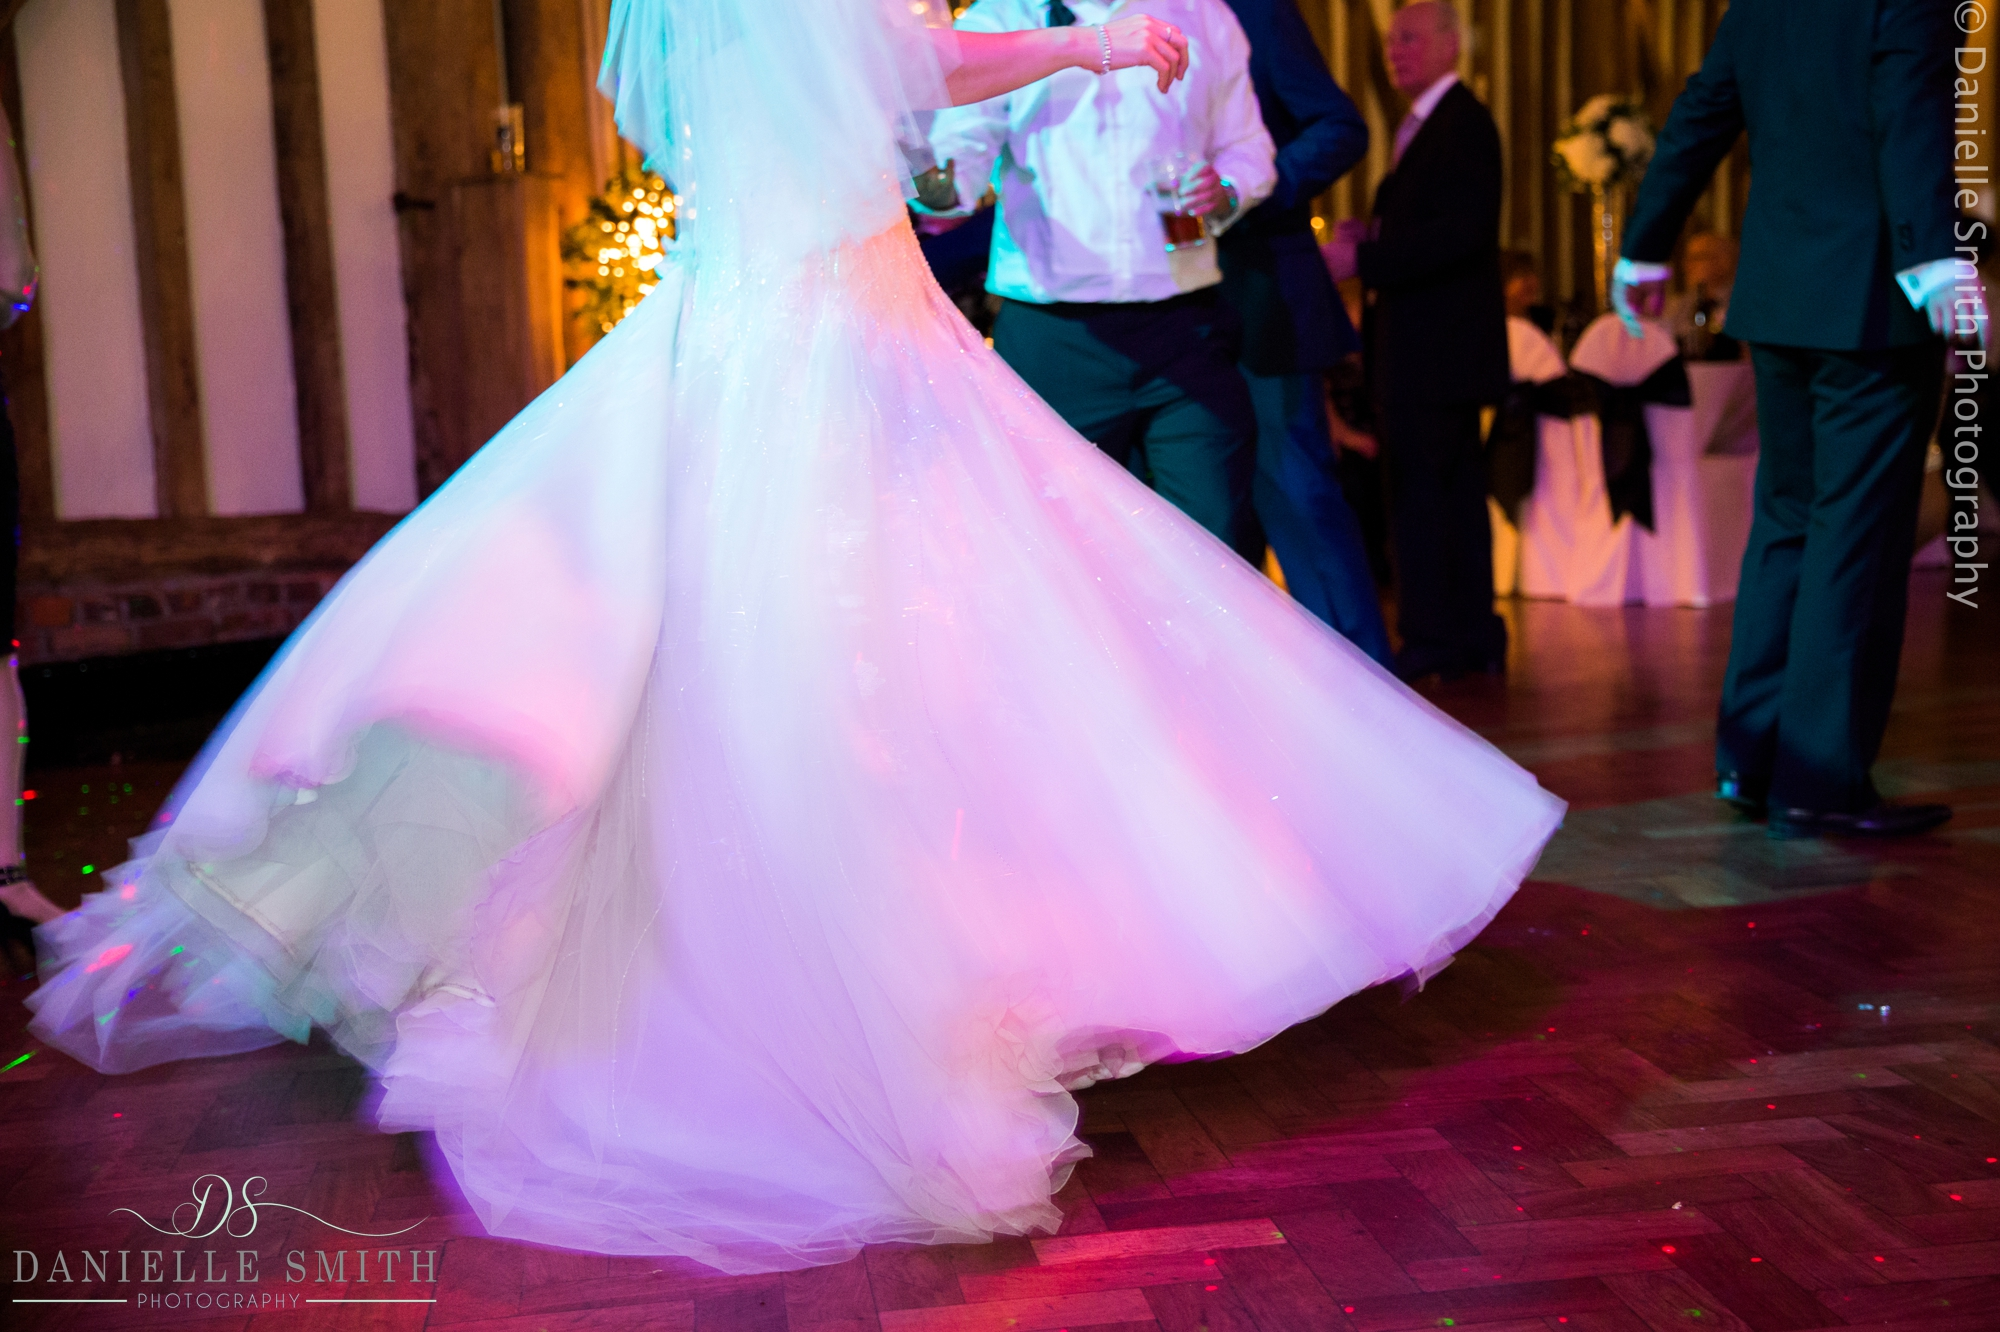 wedding dress spinning on dance floor